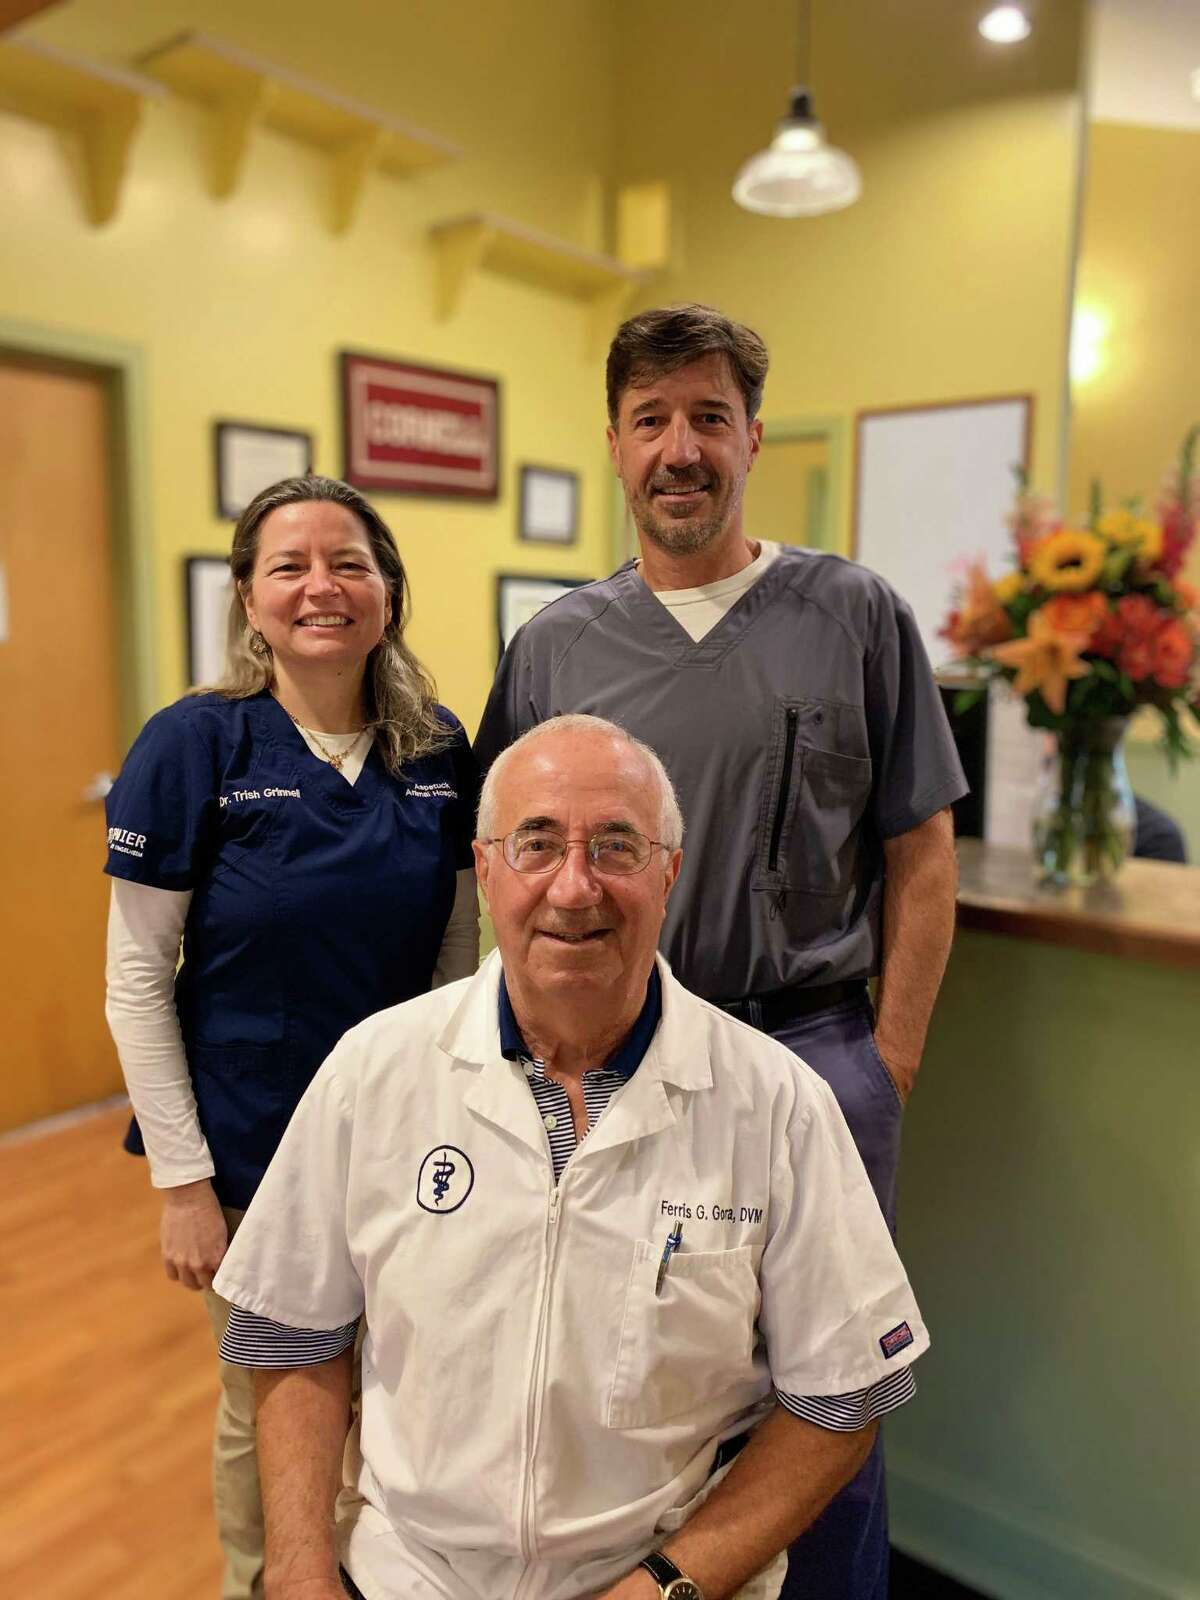 Aspetuck Animal Hospital in New Preston turned 50 in September. Founded by veterinarian Ferris Gorra, front, the business is now co-owned by Ferris' son, Michael Gorra, and Patricia Grinnell, in back row.